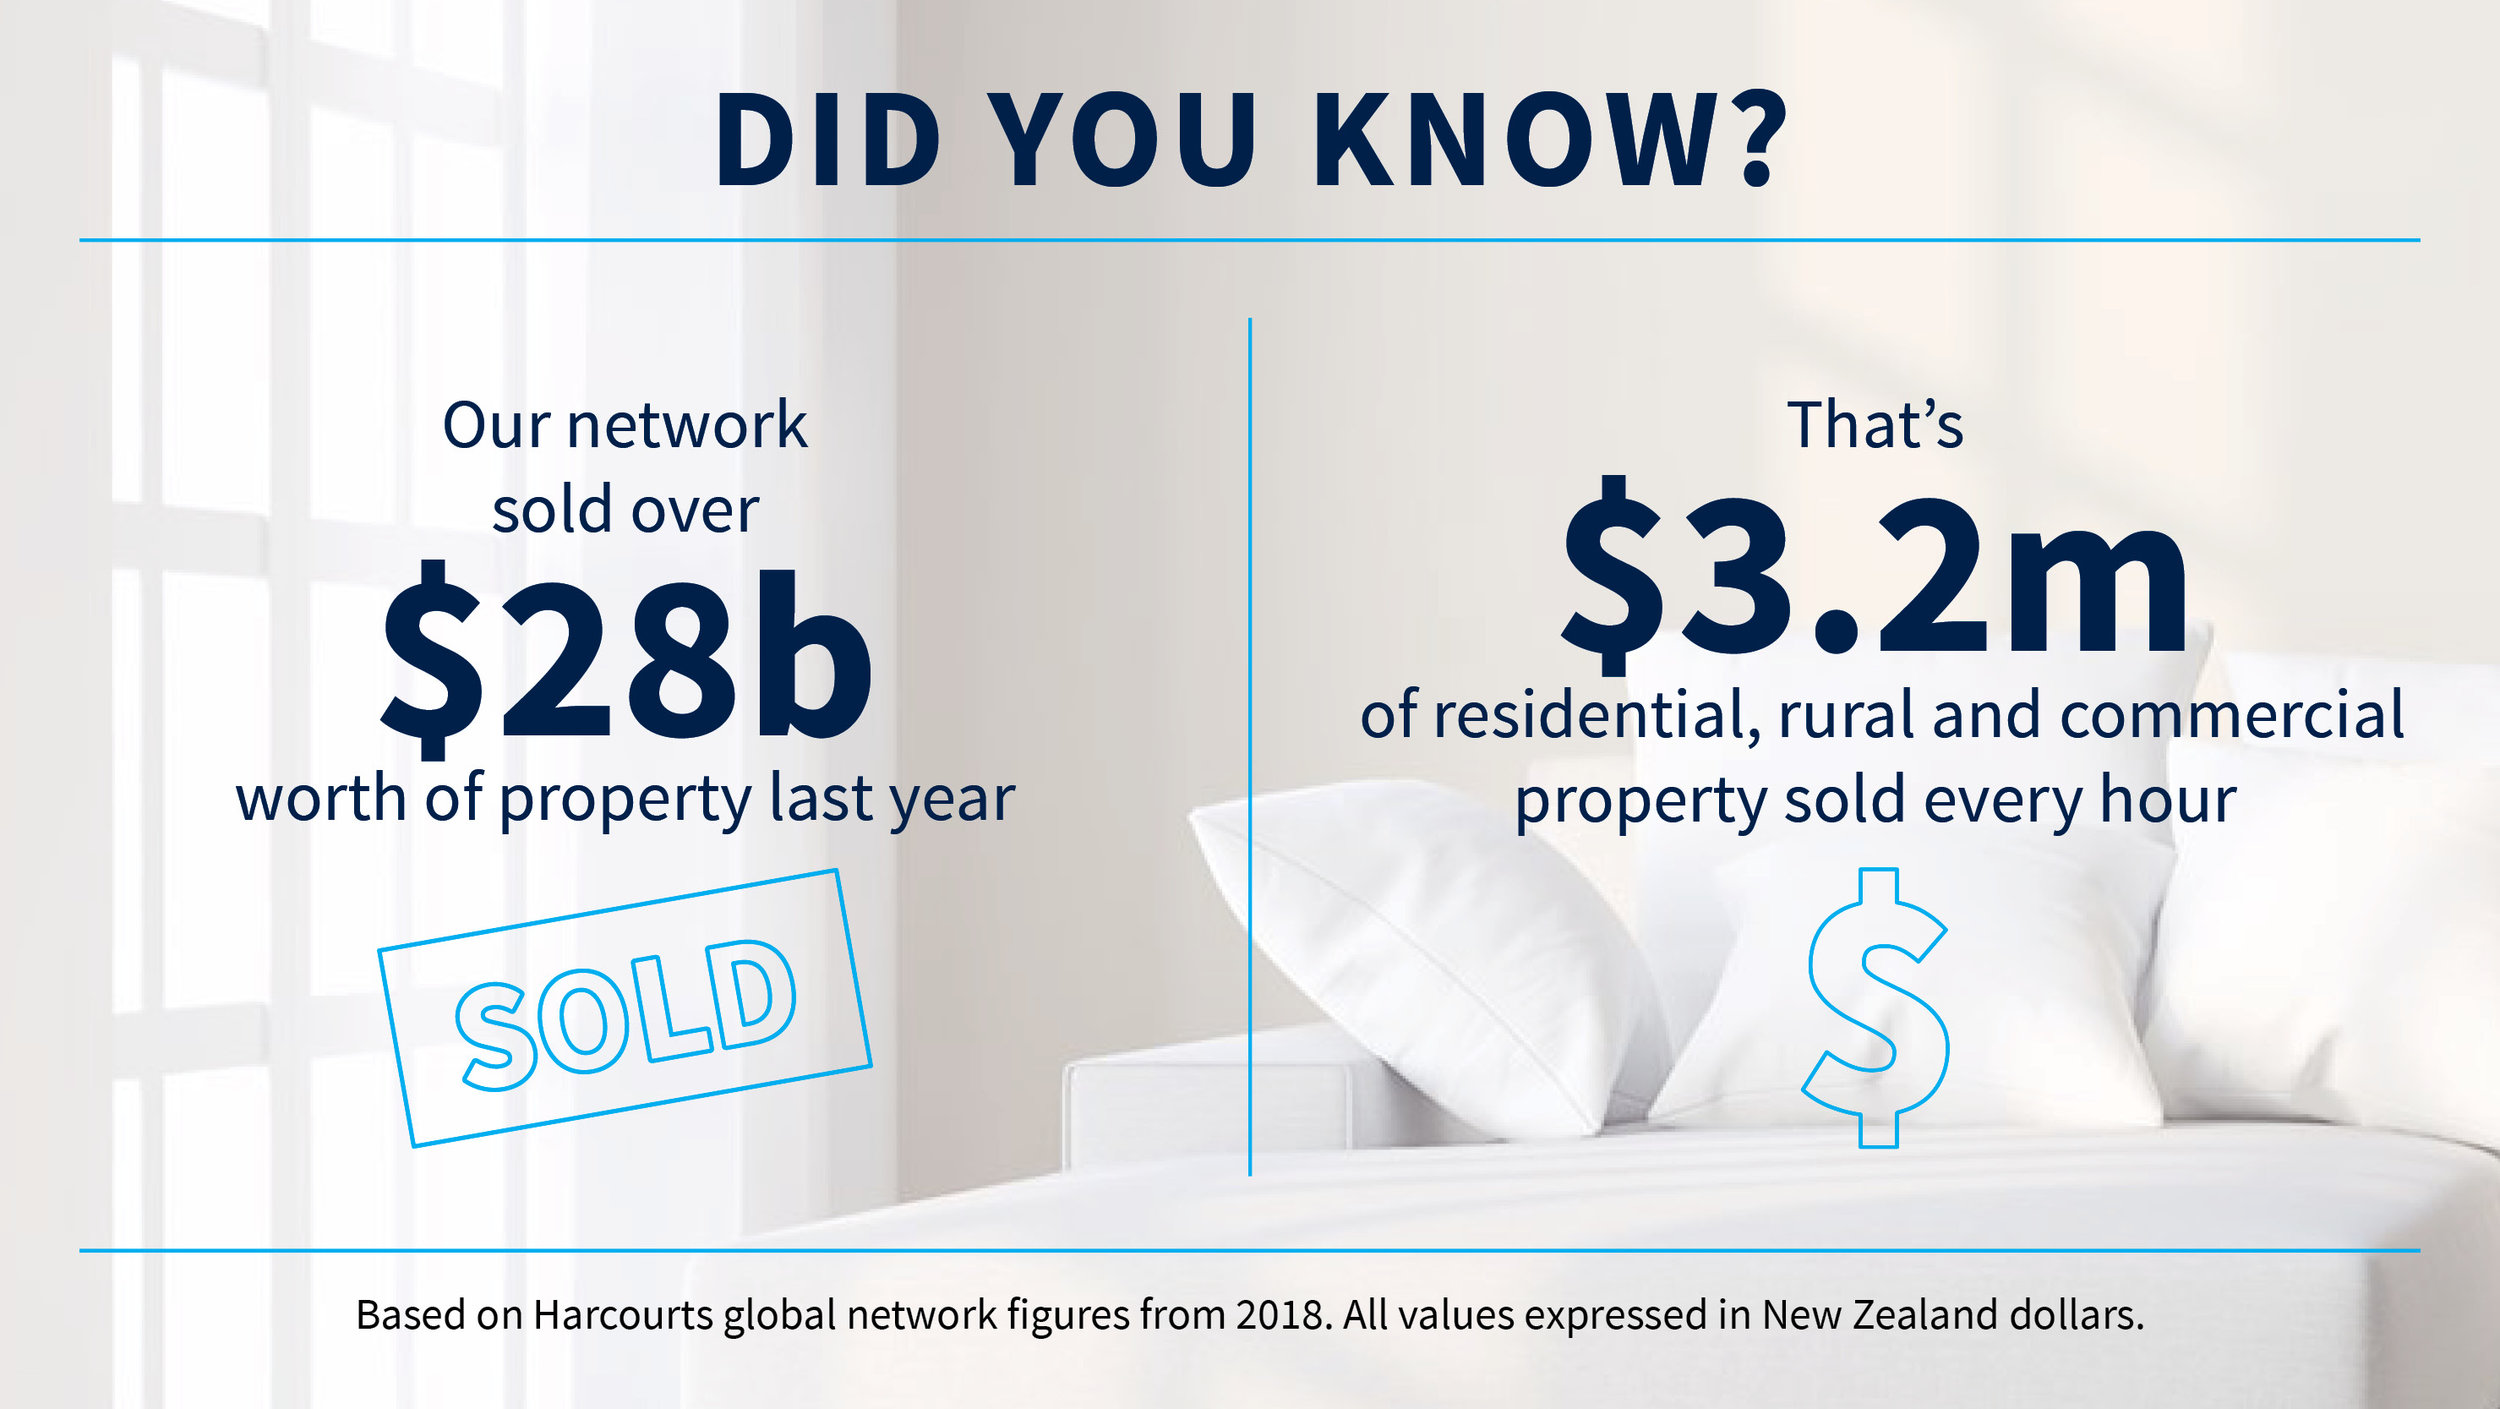 harcourts-facts-2019-ben-schembri-real-estate-boronia-2.jpg